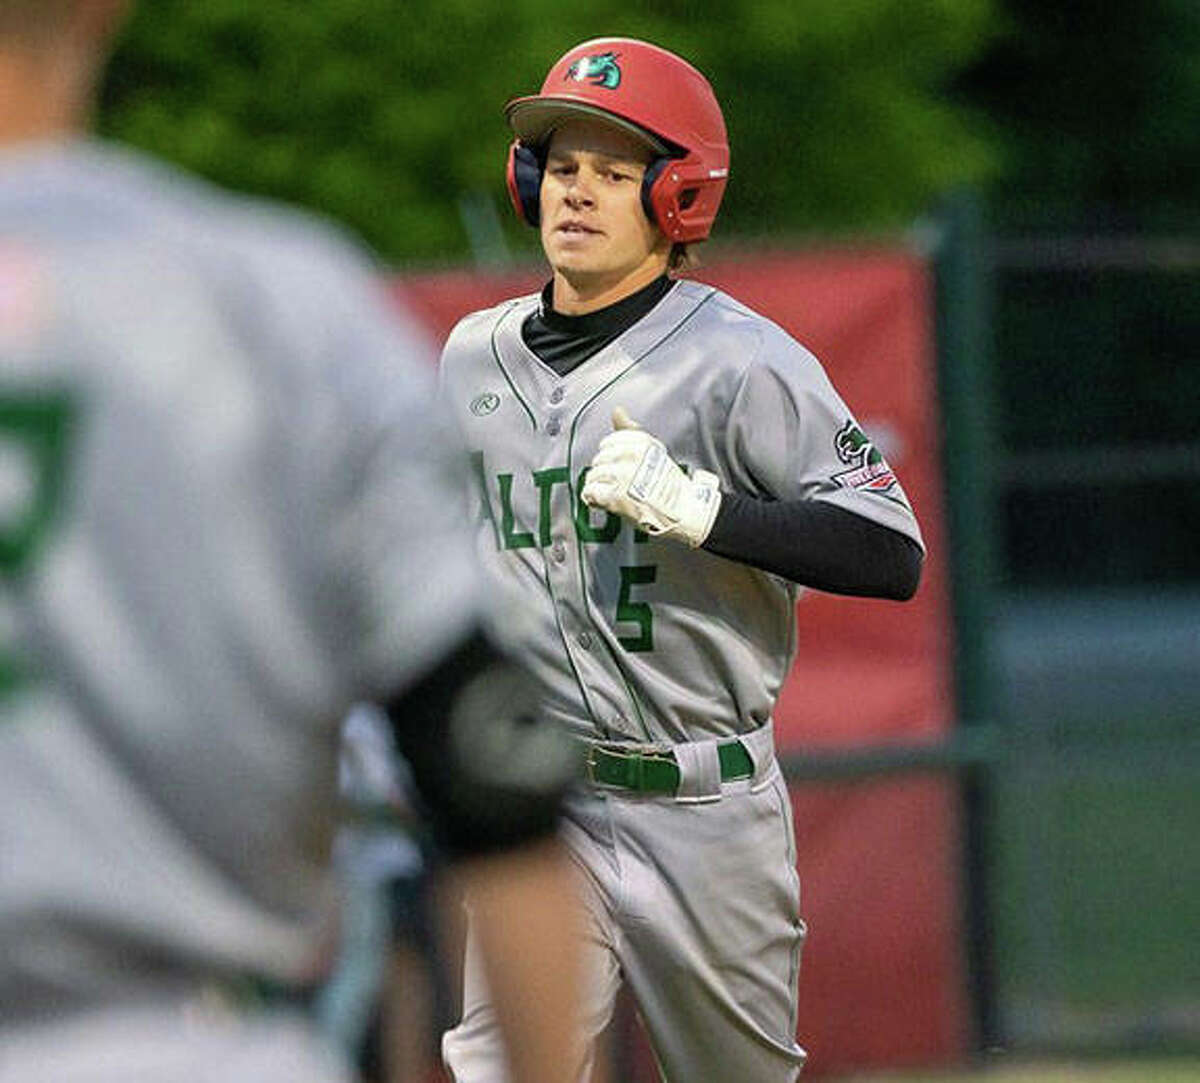 Blake Burris of the Alton river Dragons was 3 for 4 with a double, three runs and an RBI in his team's' 11-9 Prospect League baseball victory over the O'Fallon Hoots Saturday night in O'Fallon, Mo.